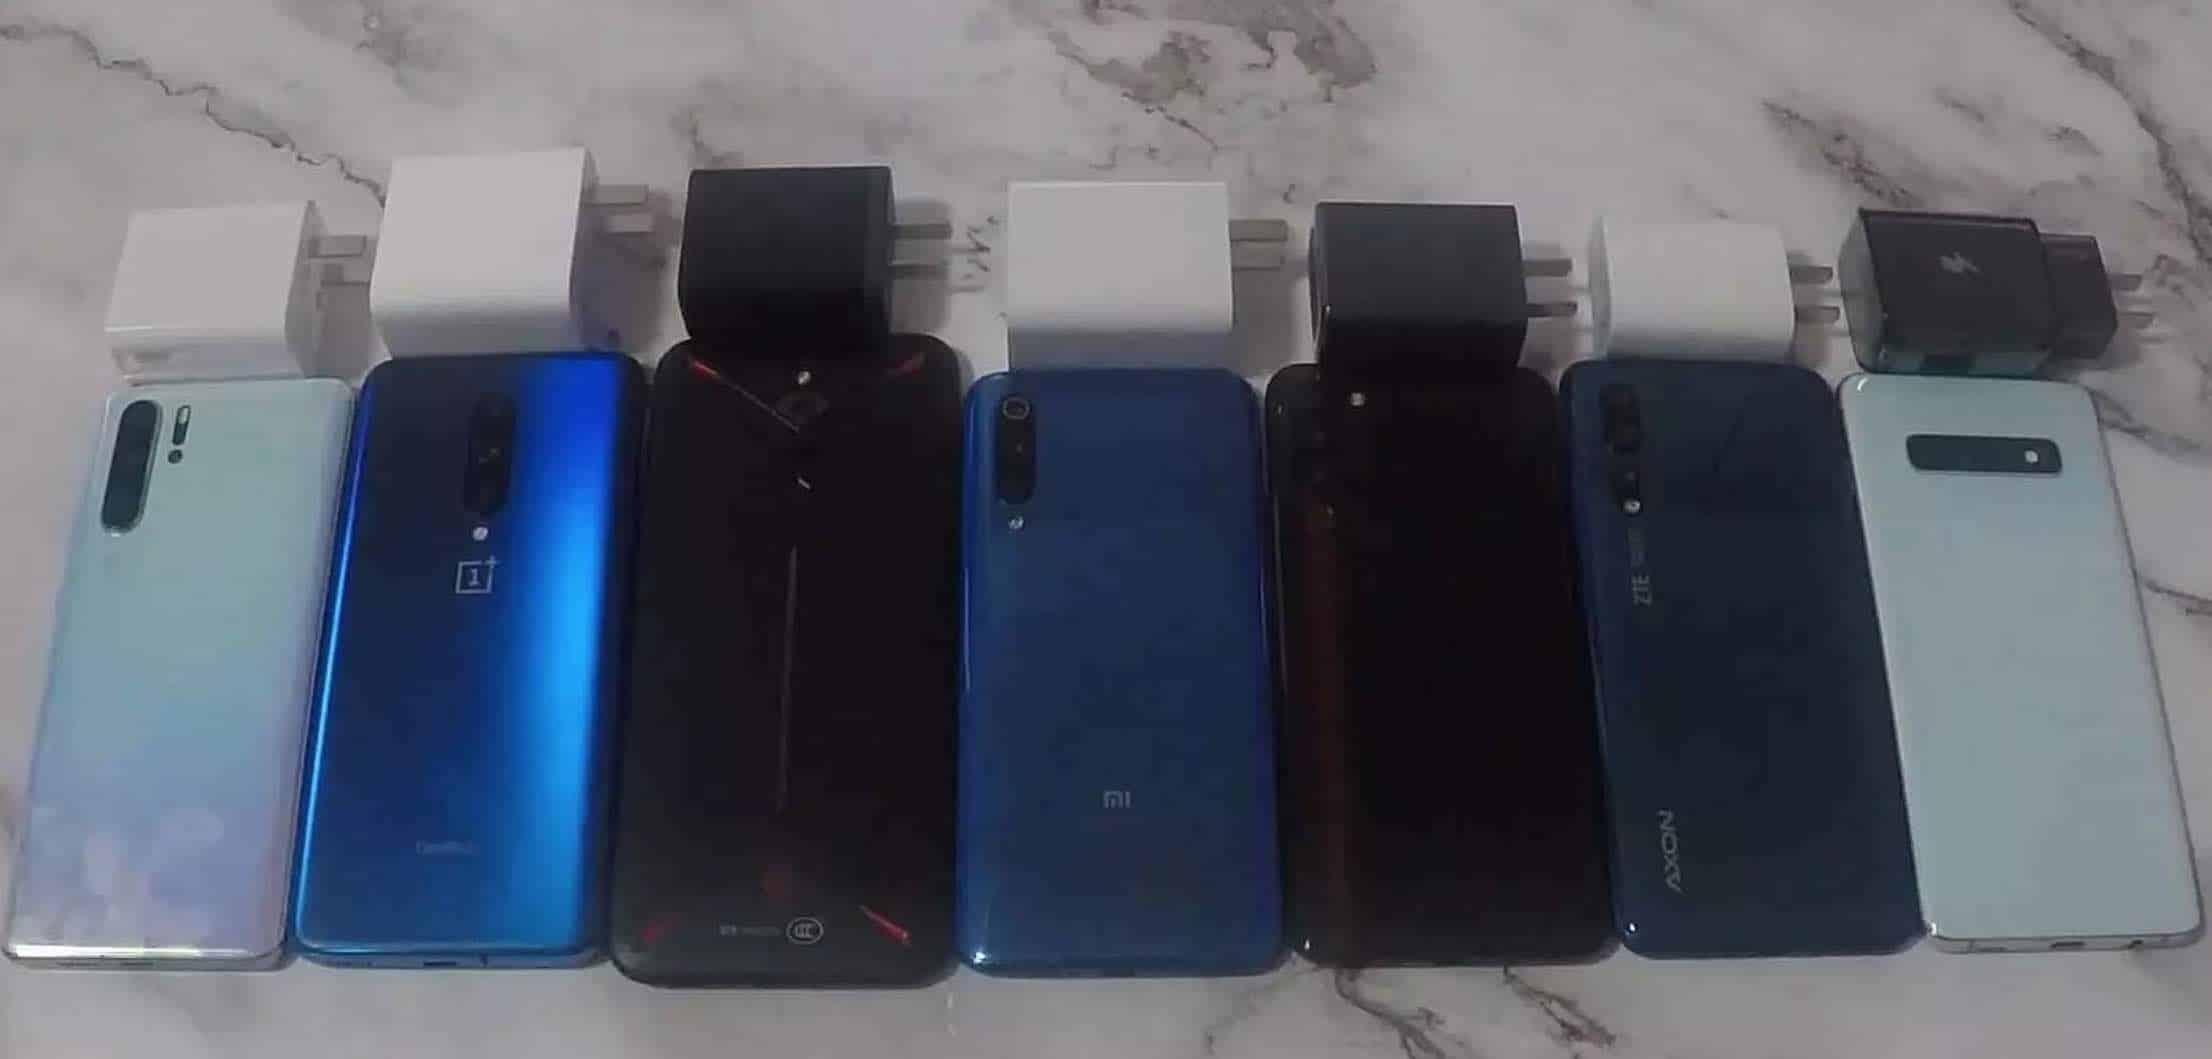 7 Mobile Phones Fast Charging Comparison Test: Xiaomi 9 Emerges the Winner